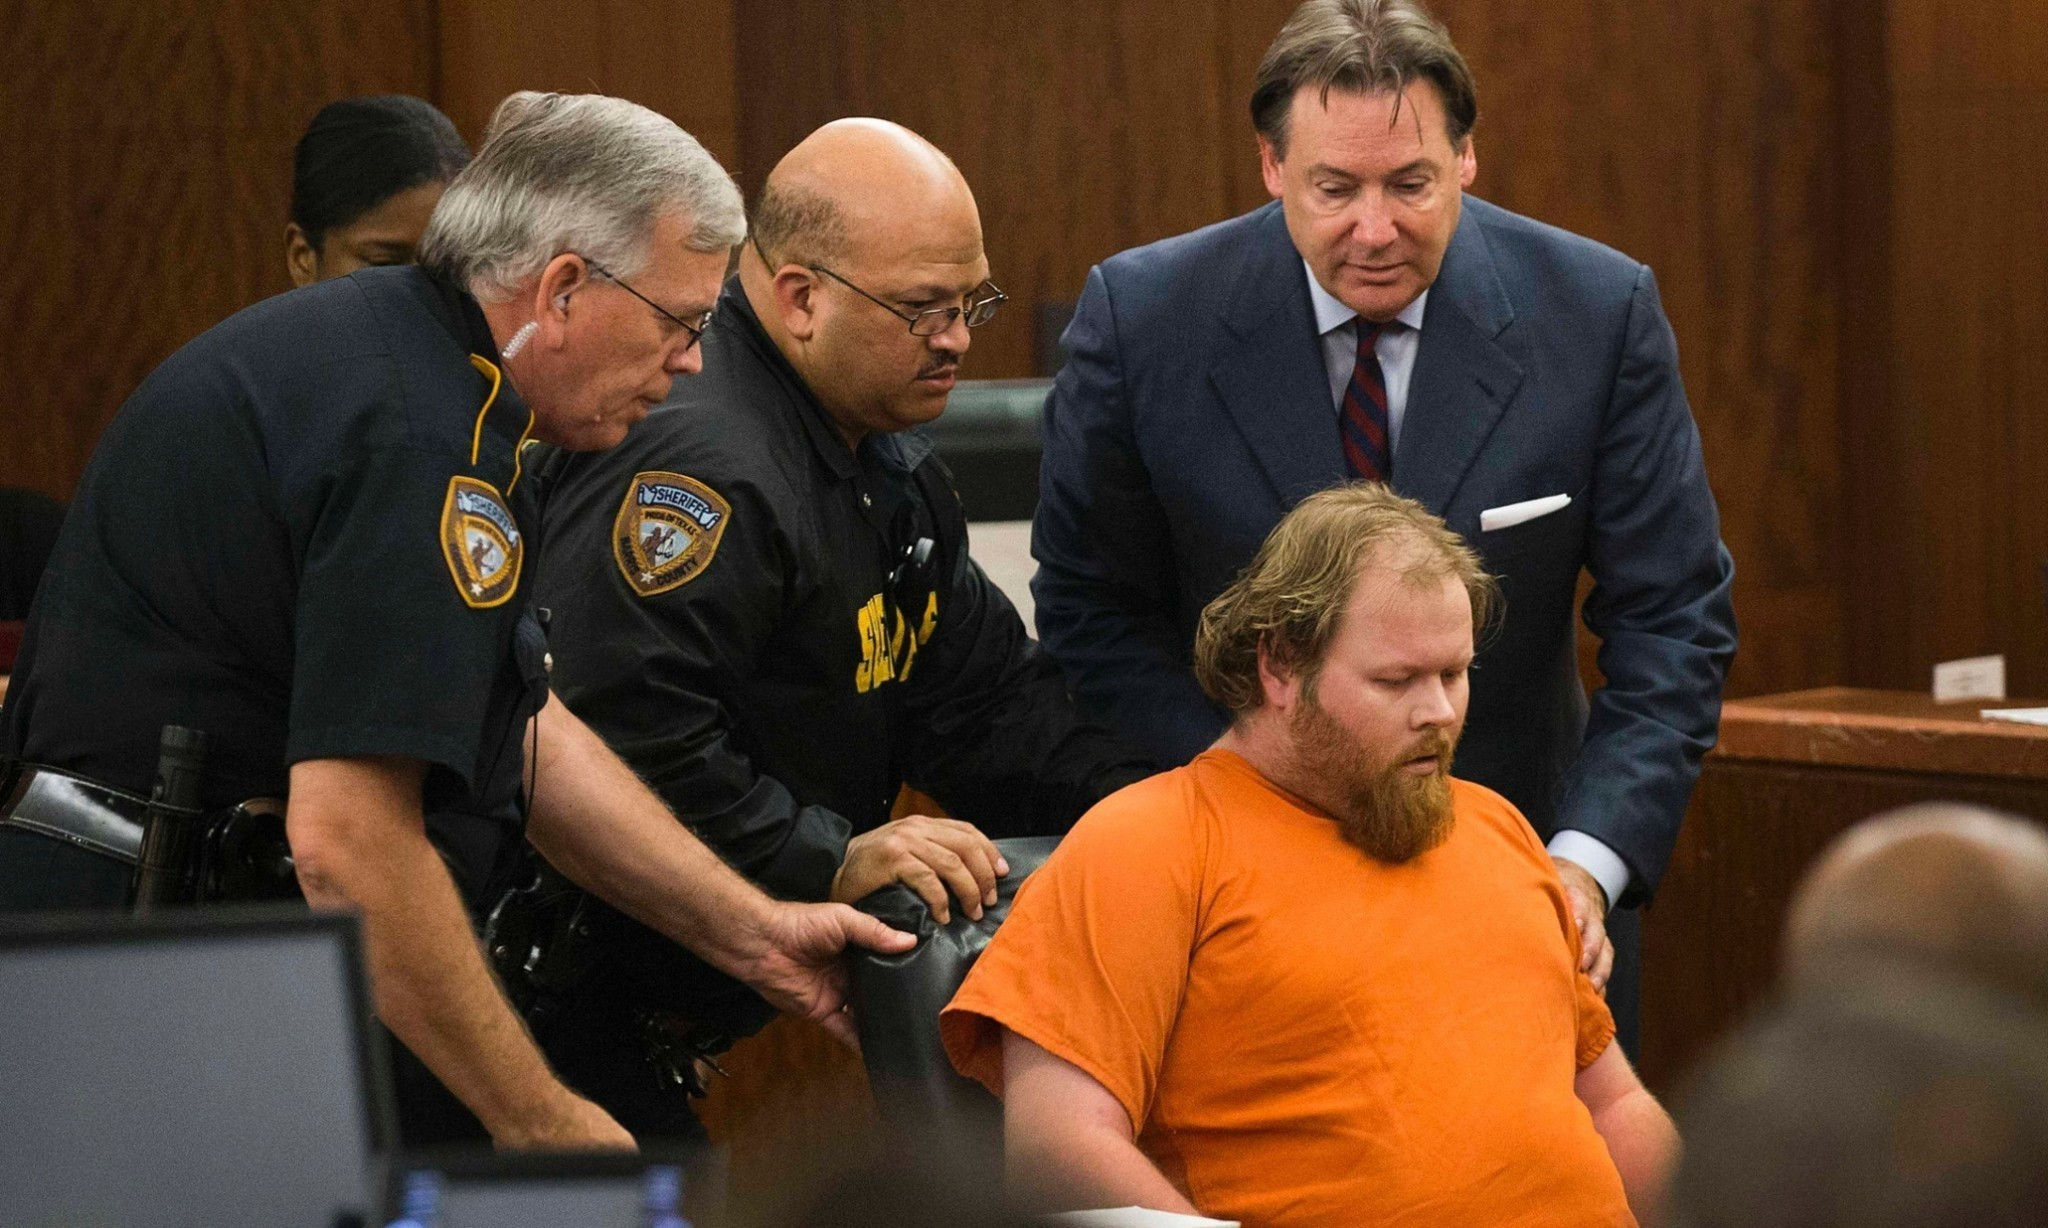 Texas killing suspect collapses during court hearing